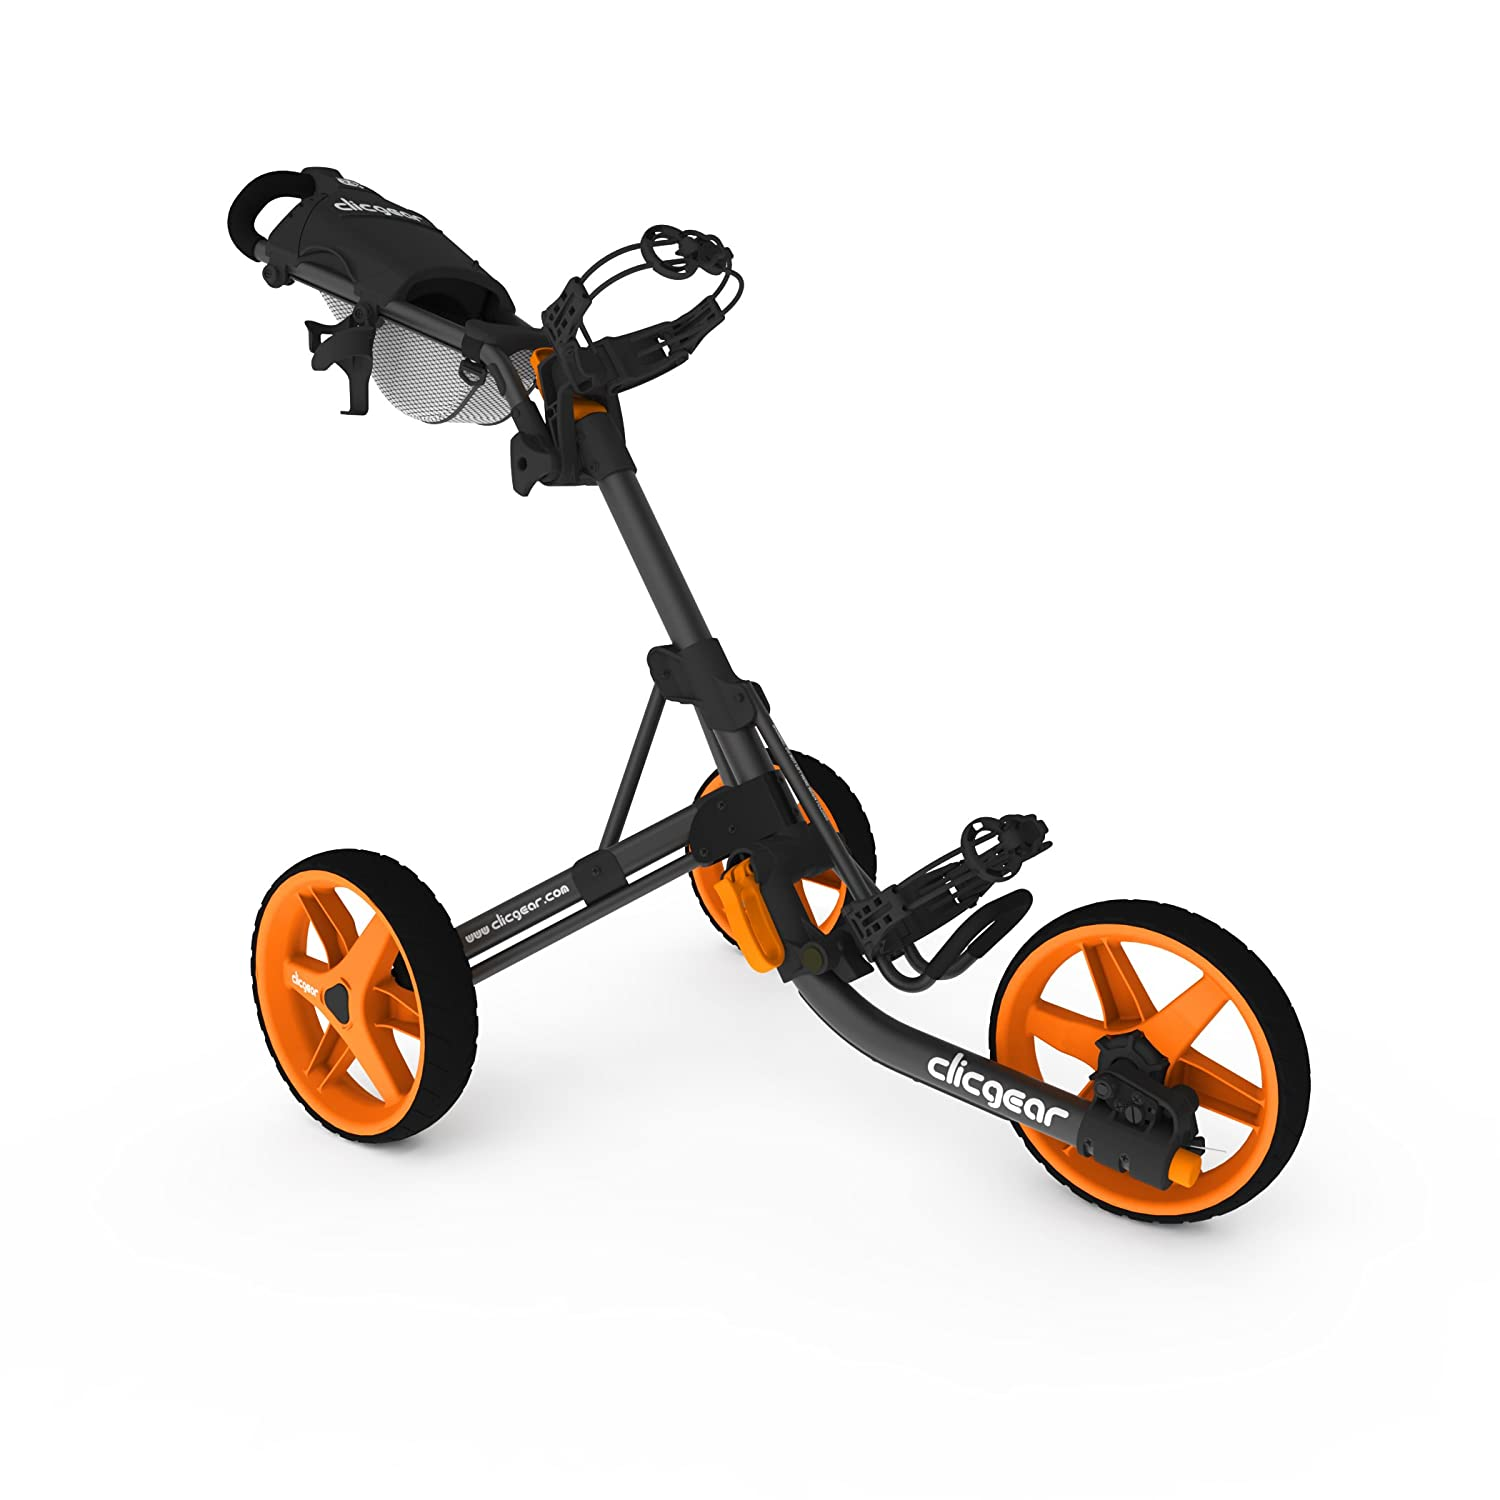 The Best Golf Push Cart 2